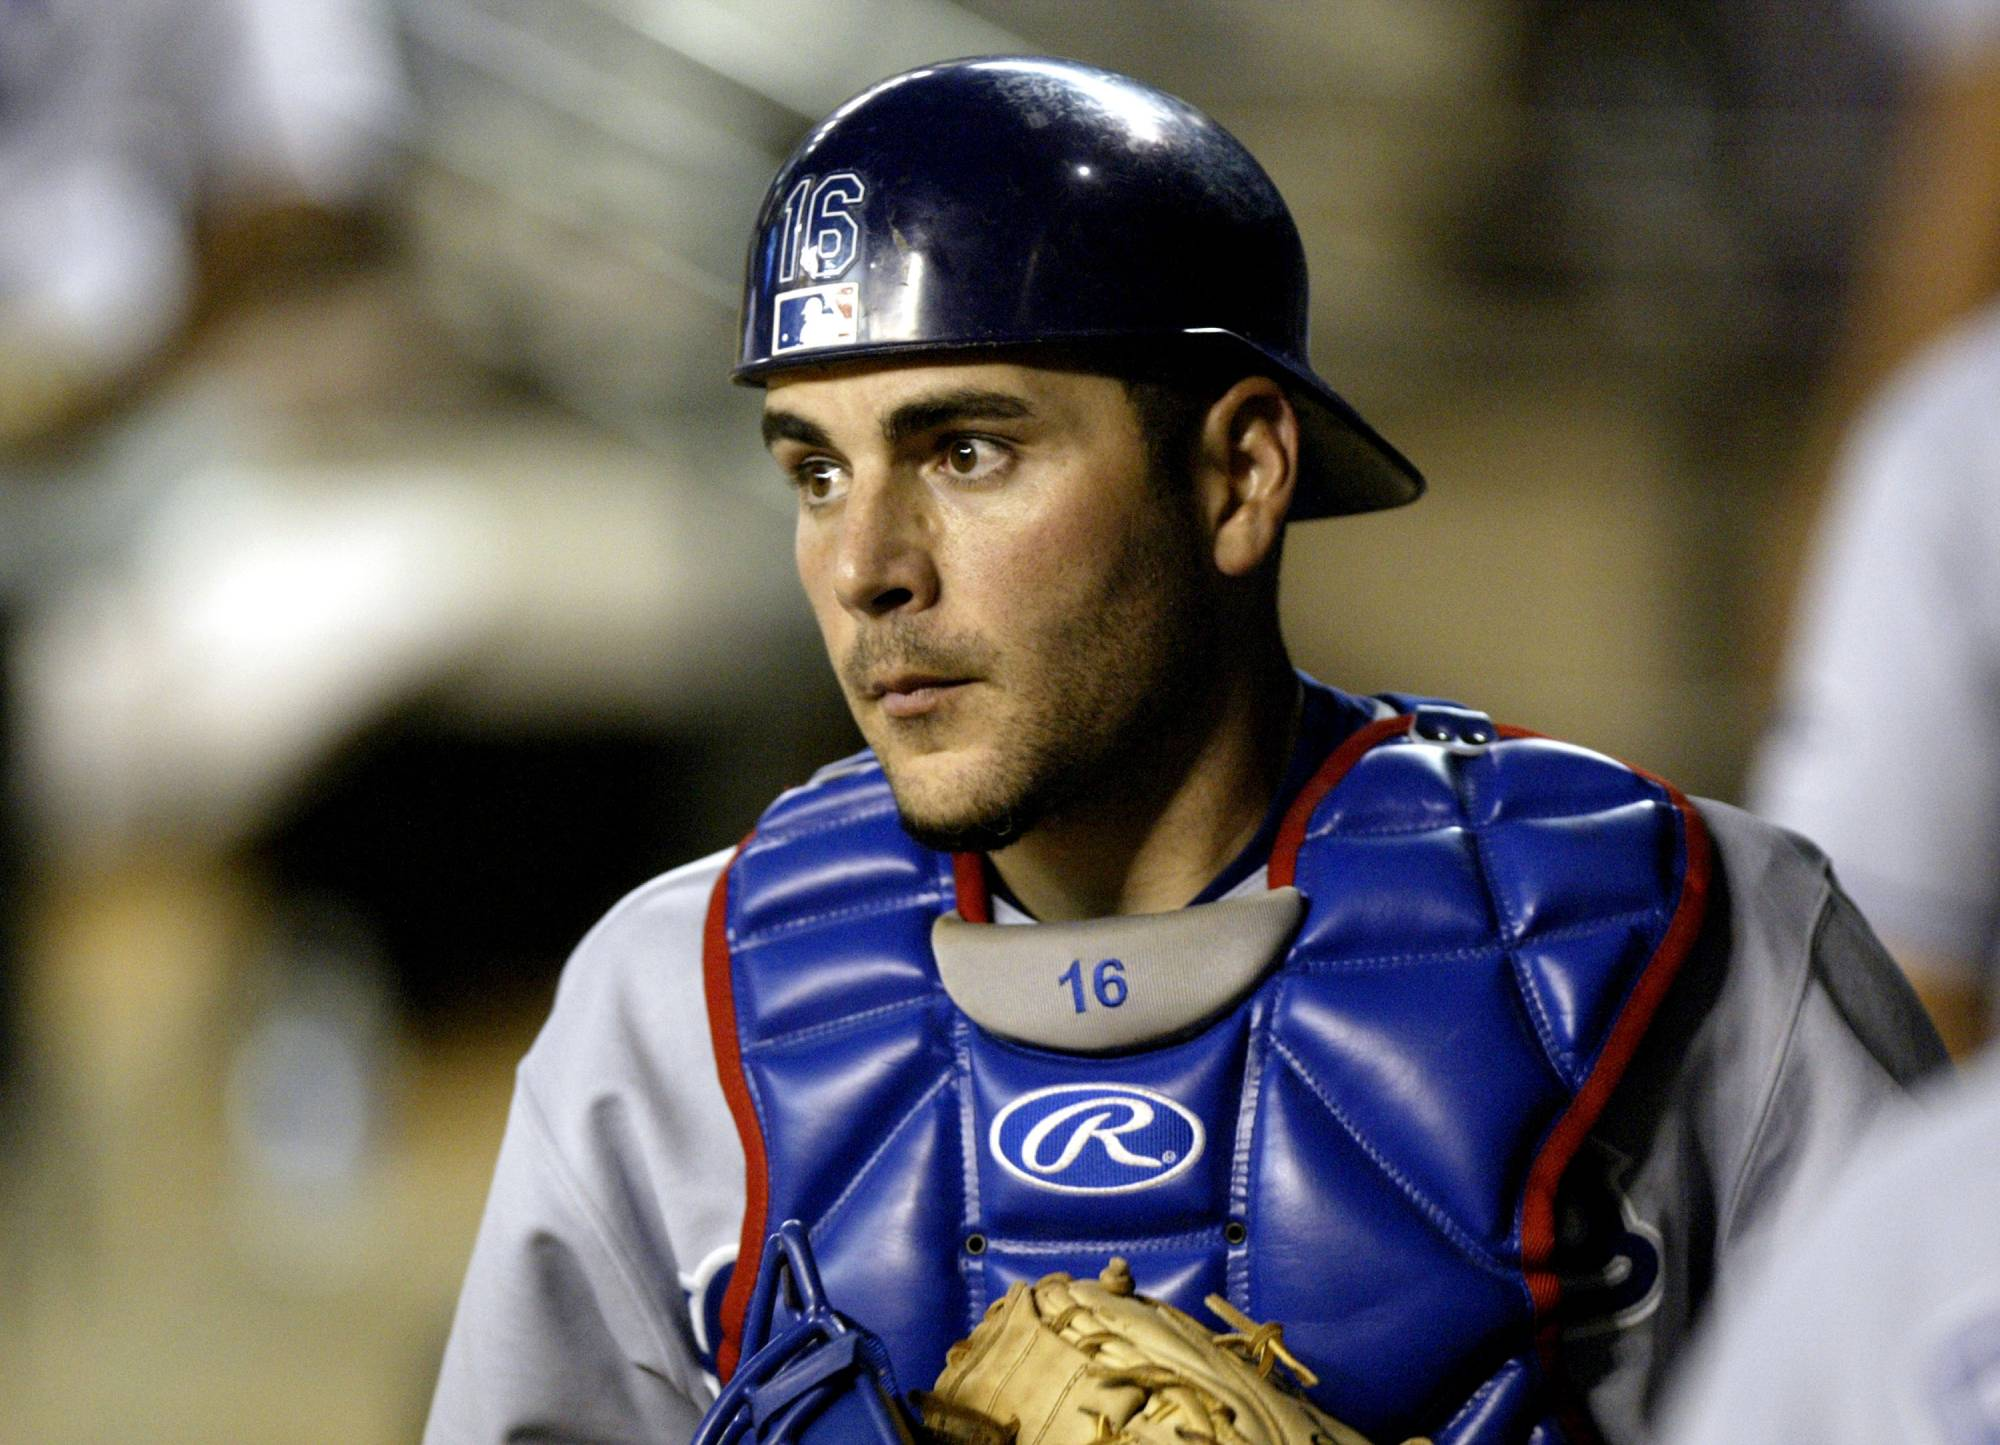 Ex-MLB Catcher Paul Lo Duca Just Waged War With a Barstool Sports Teammate